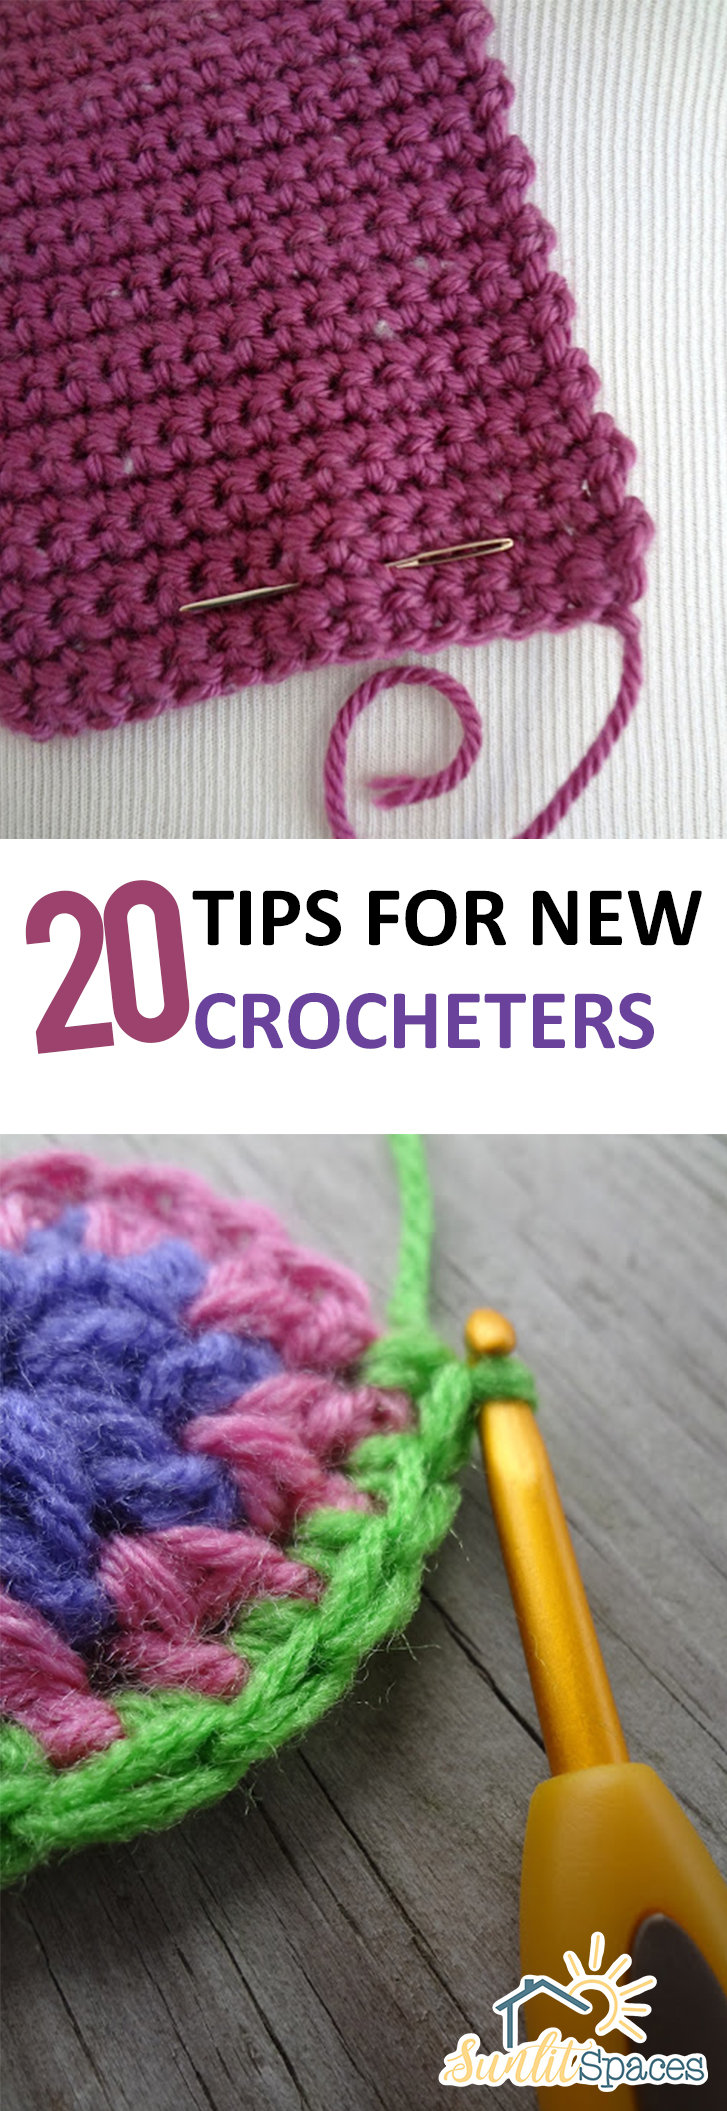 Crocheting Tips : Crochet Tips, Crocheting Tips, How to Crochet, Learn How to Crochet ...